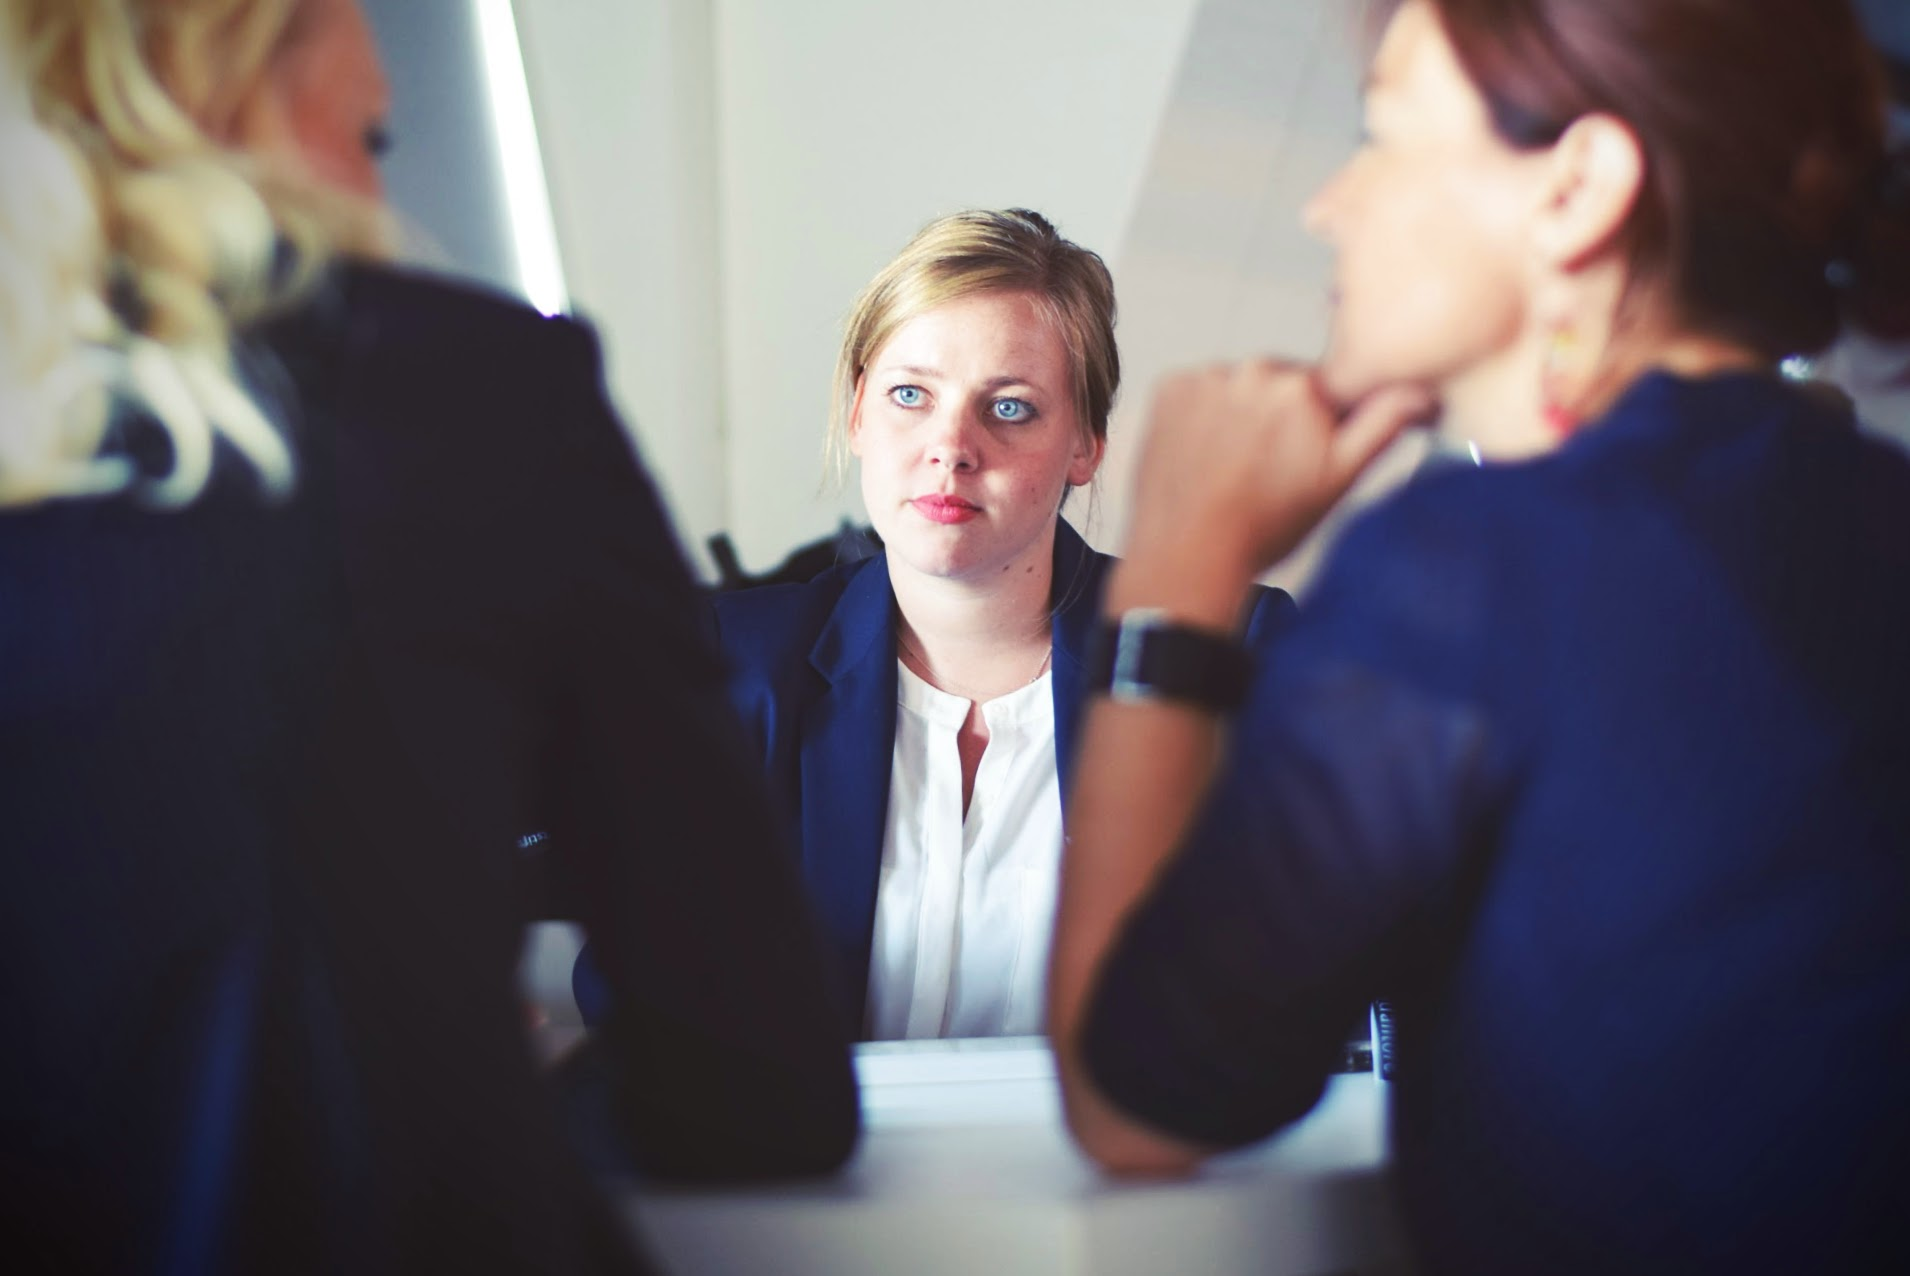 Woman in an interview with two other women conducting it